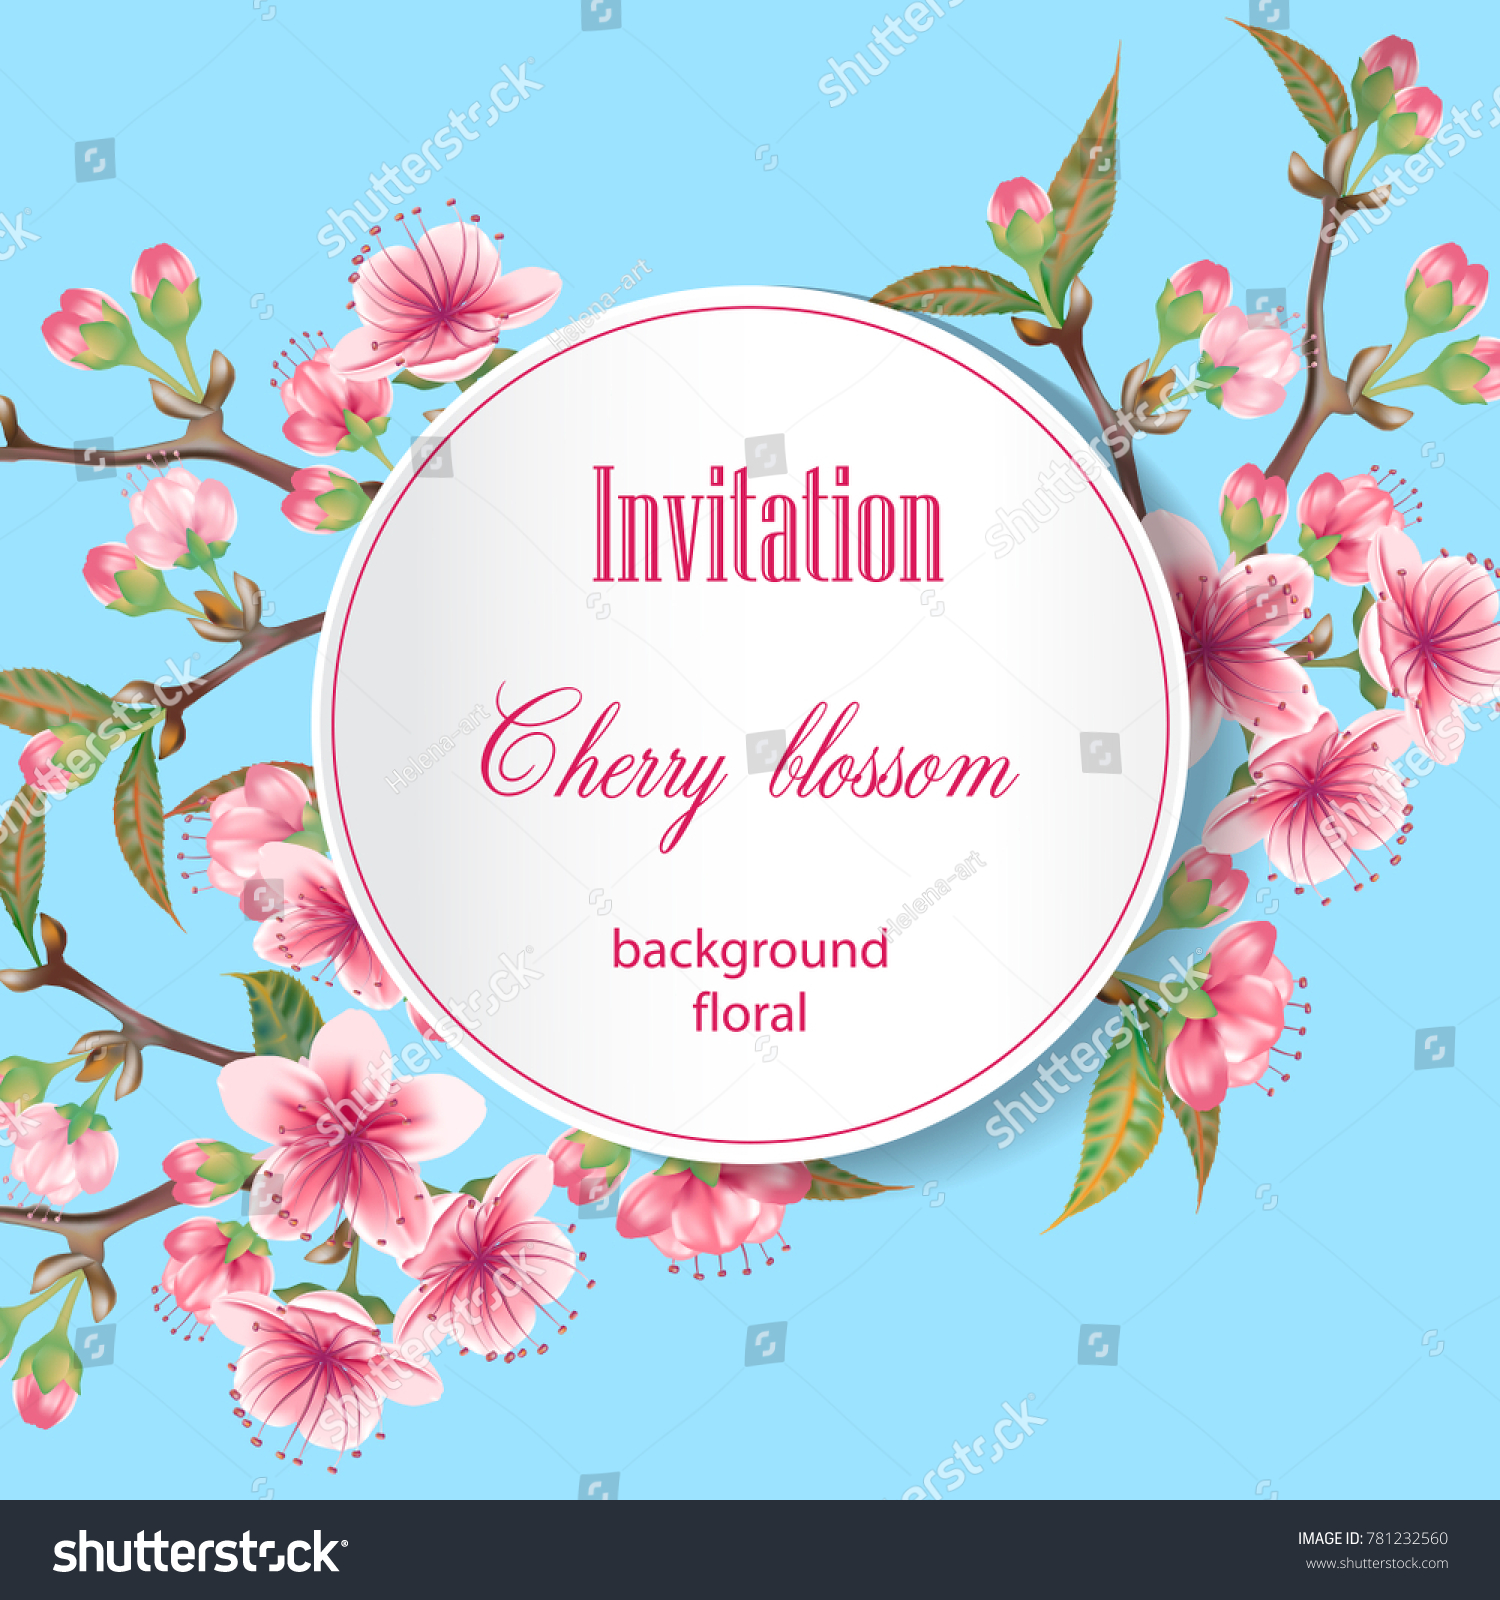 Cherry Blossoms Illustration Greeting Card Wedding Stock Vector